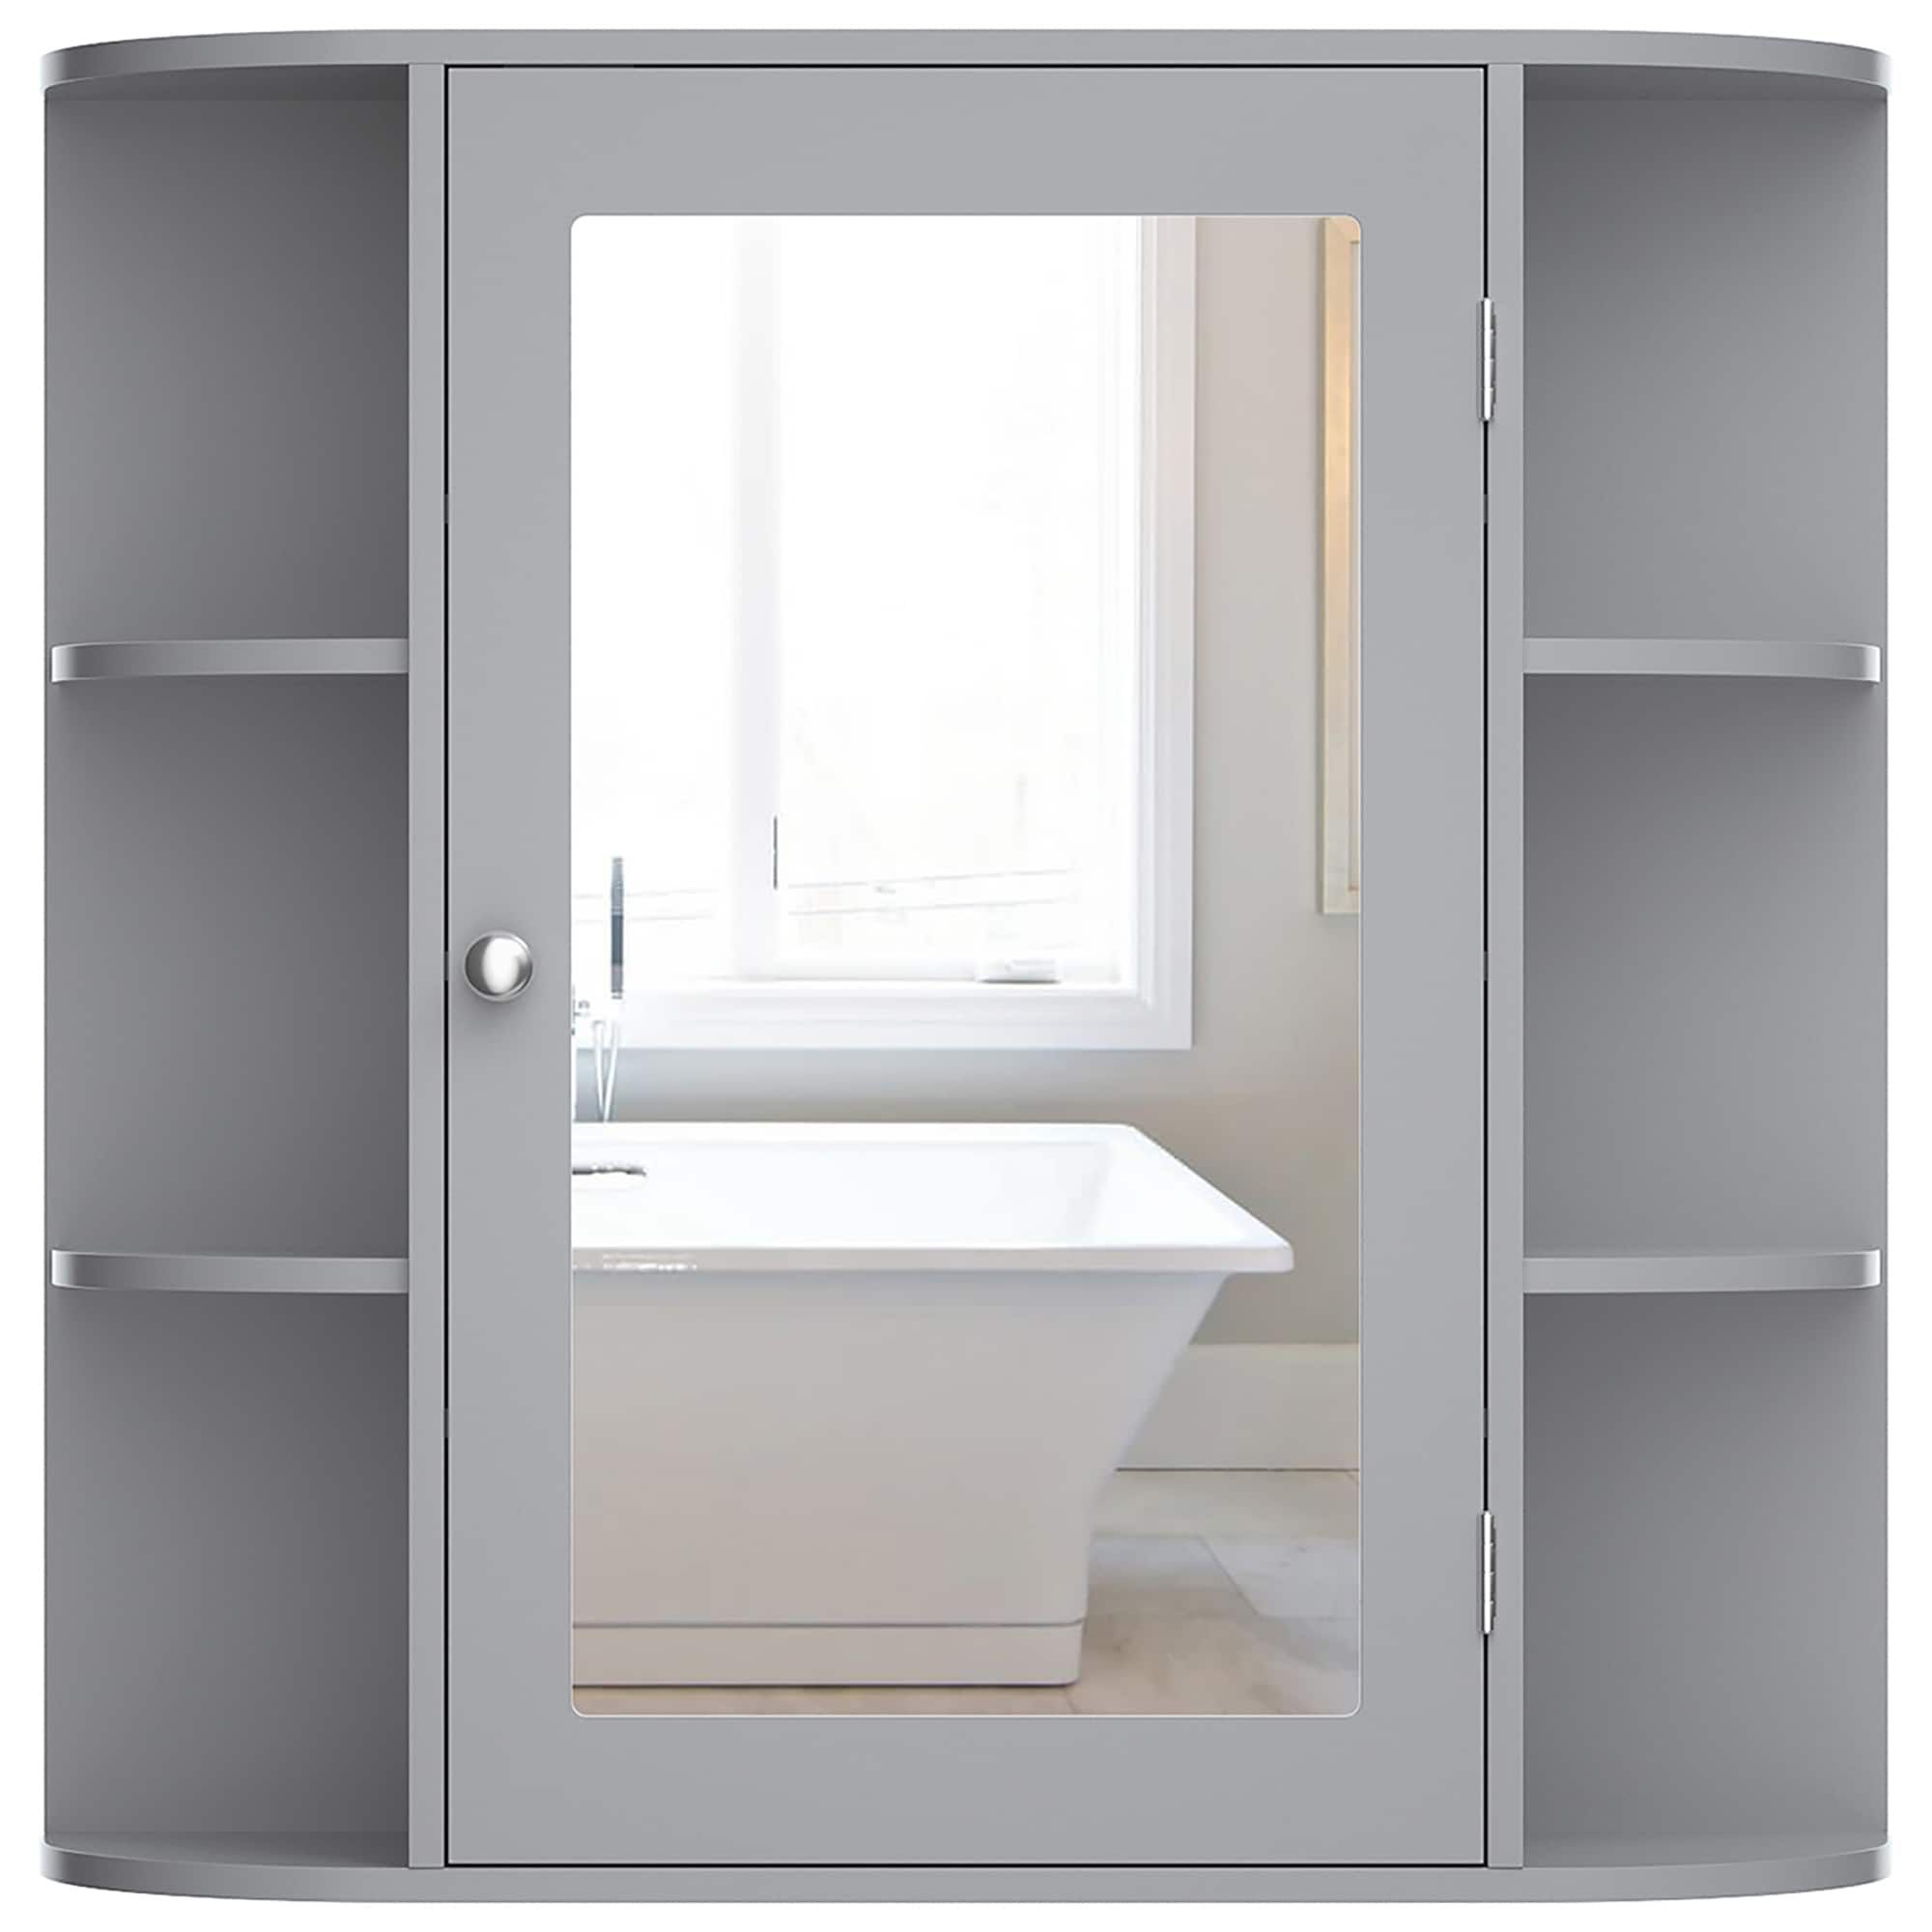 Costway Wall Mounted Medicine Cabinet W Mirrored Door And 6 Open 26 X 6 5 X 25 L X W X H Overstock 32076730